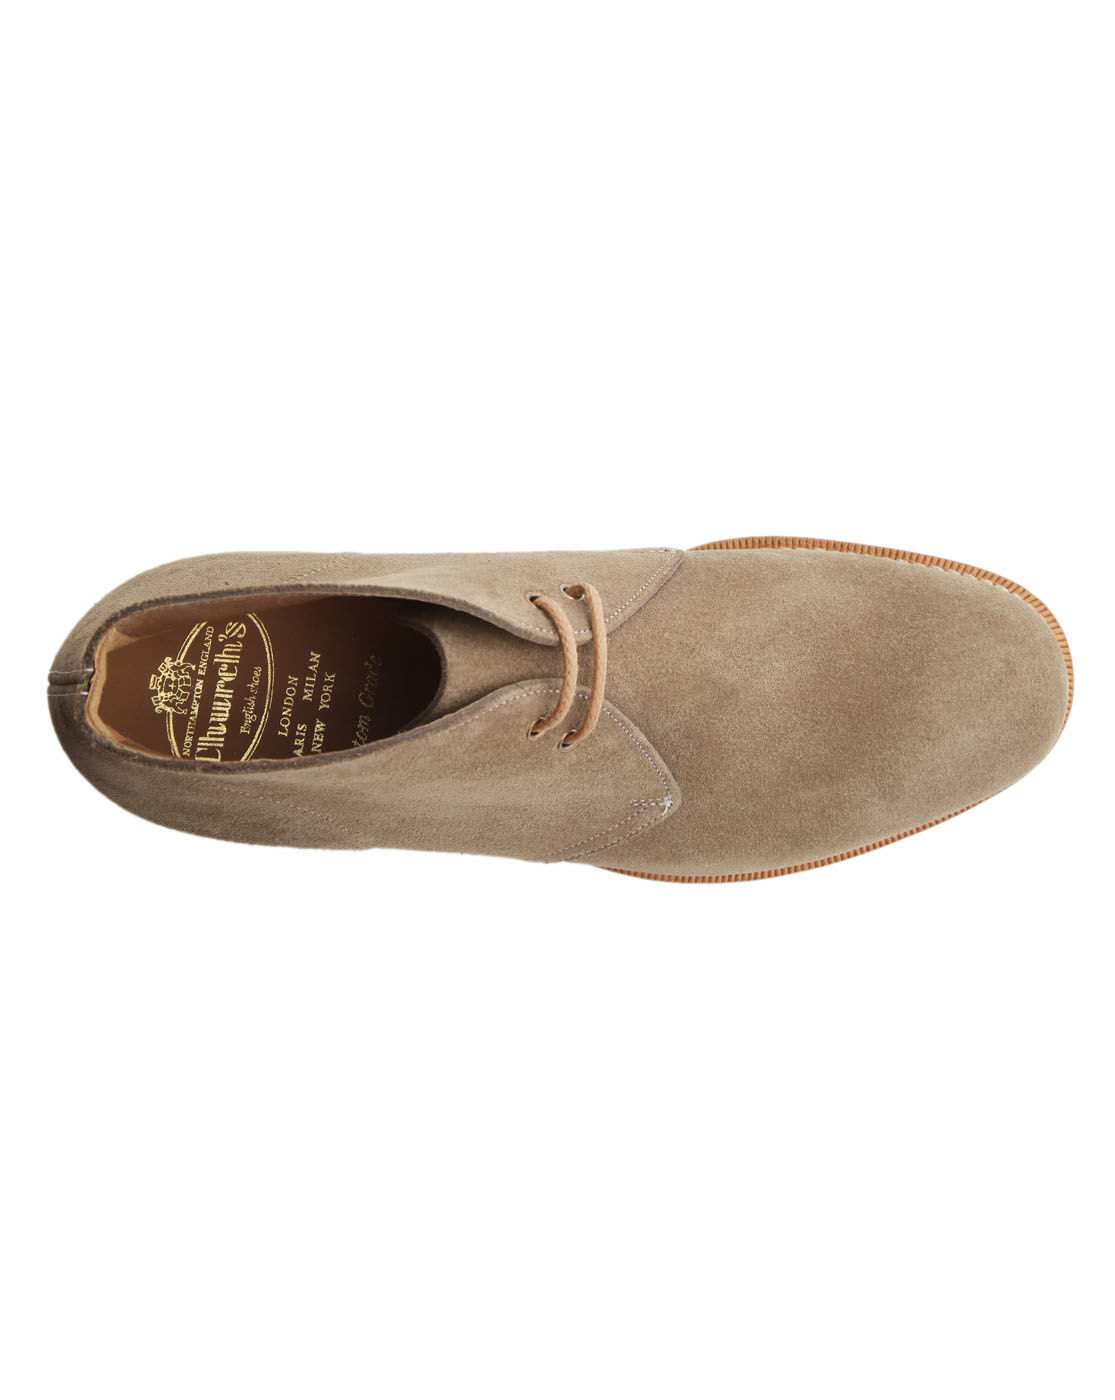 Church 39 s sahara taupe suede desert boots in beige for men taupe lyst Sdb chocolat taupe